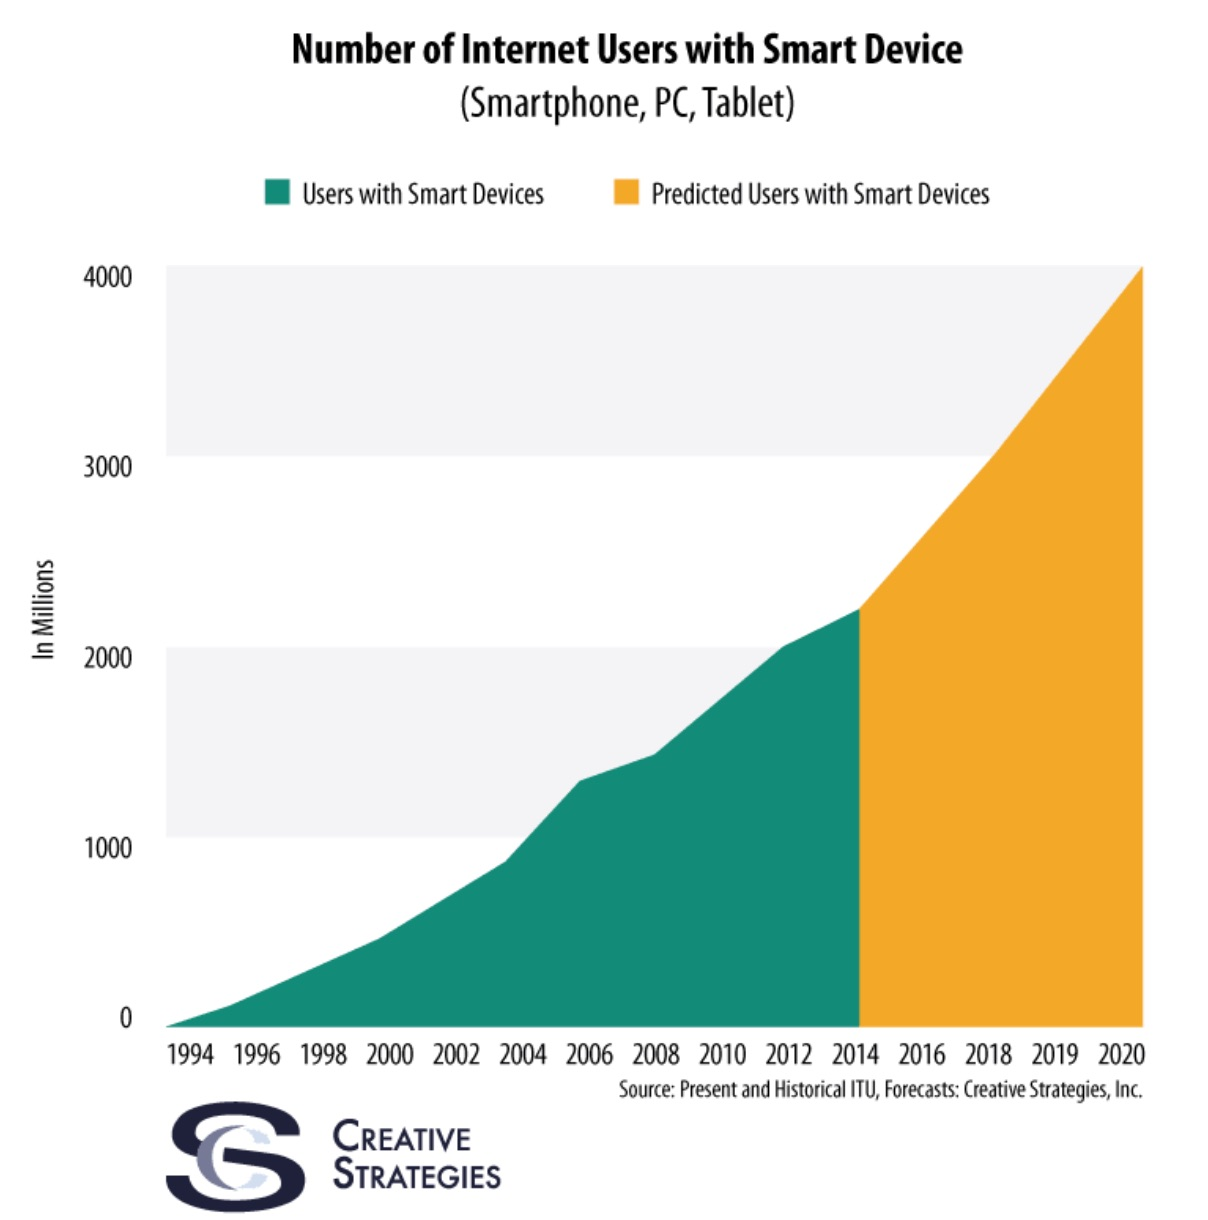 How_Smartphones_Can_Be_Disruptive_as_The_Next_2_Billion_People_Who_Come_Online___Tech_pinions_-_Perspective__Insight__Analysis.jpg